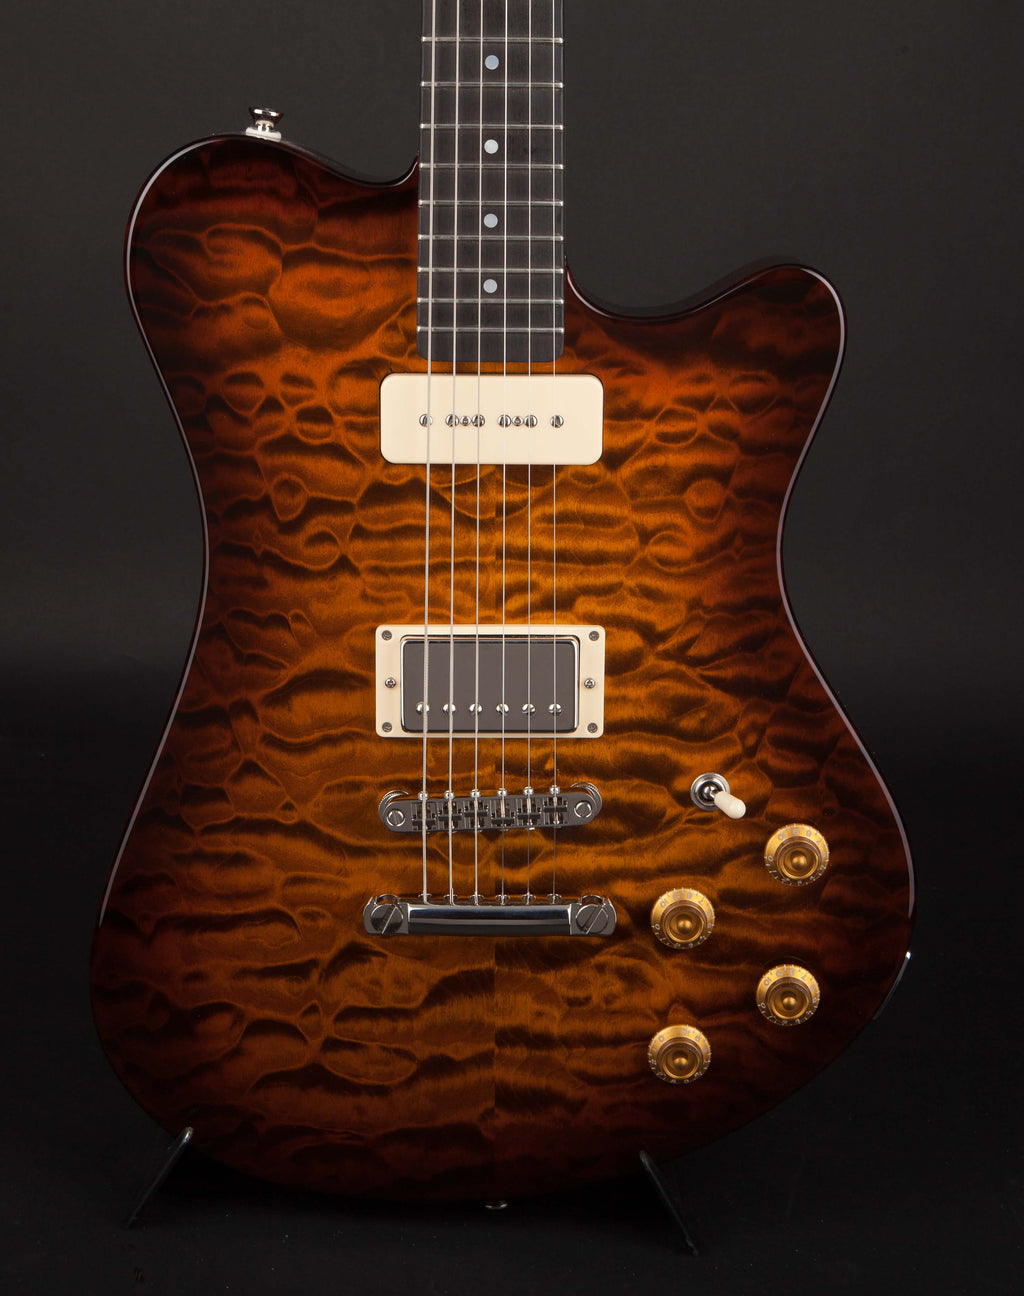 Smitty Guitars: Model 2 Quilt with Mastergrade Quilt Maple Neck